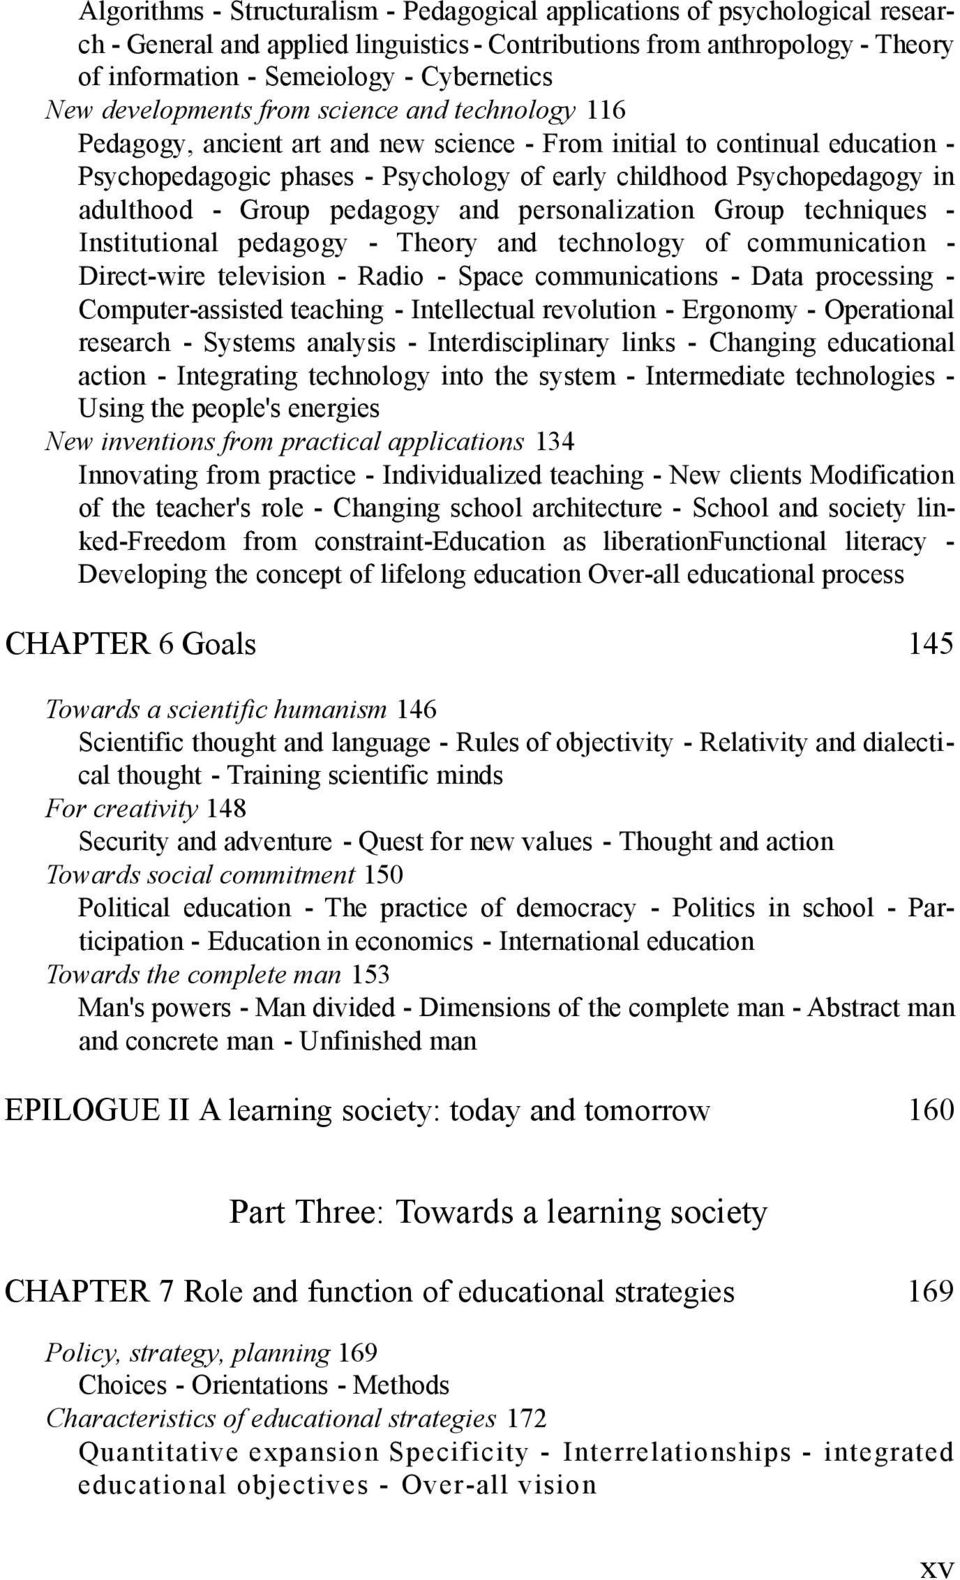 adulthood - Group pedagogy and personalization Group techniques - Institutional pedagogy - Theory and technology of communication - Direct-wire television - Radio - Space communications - Data